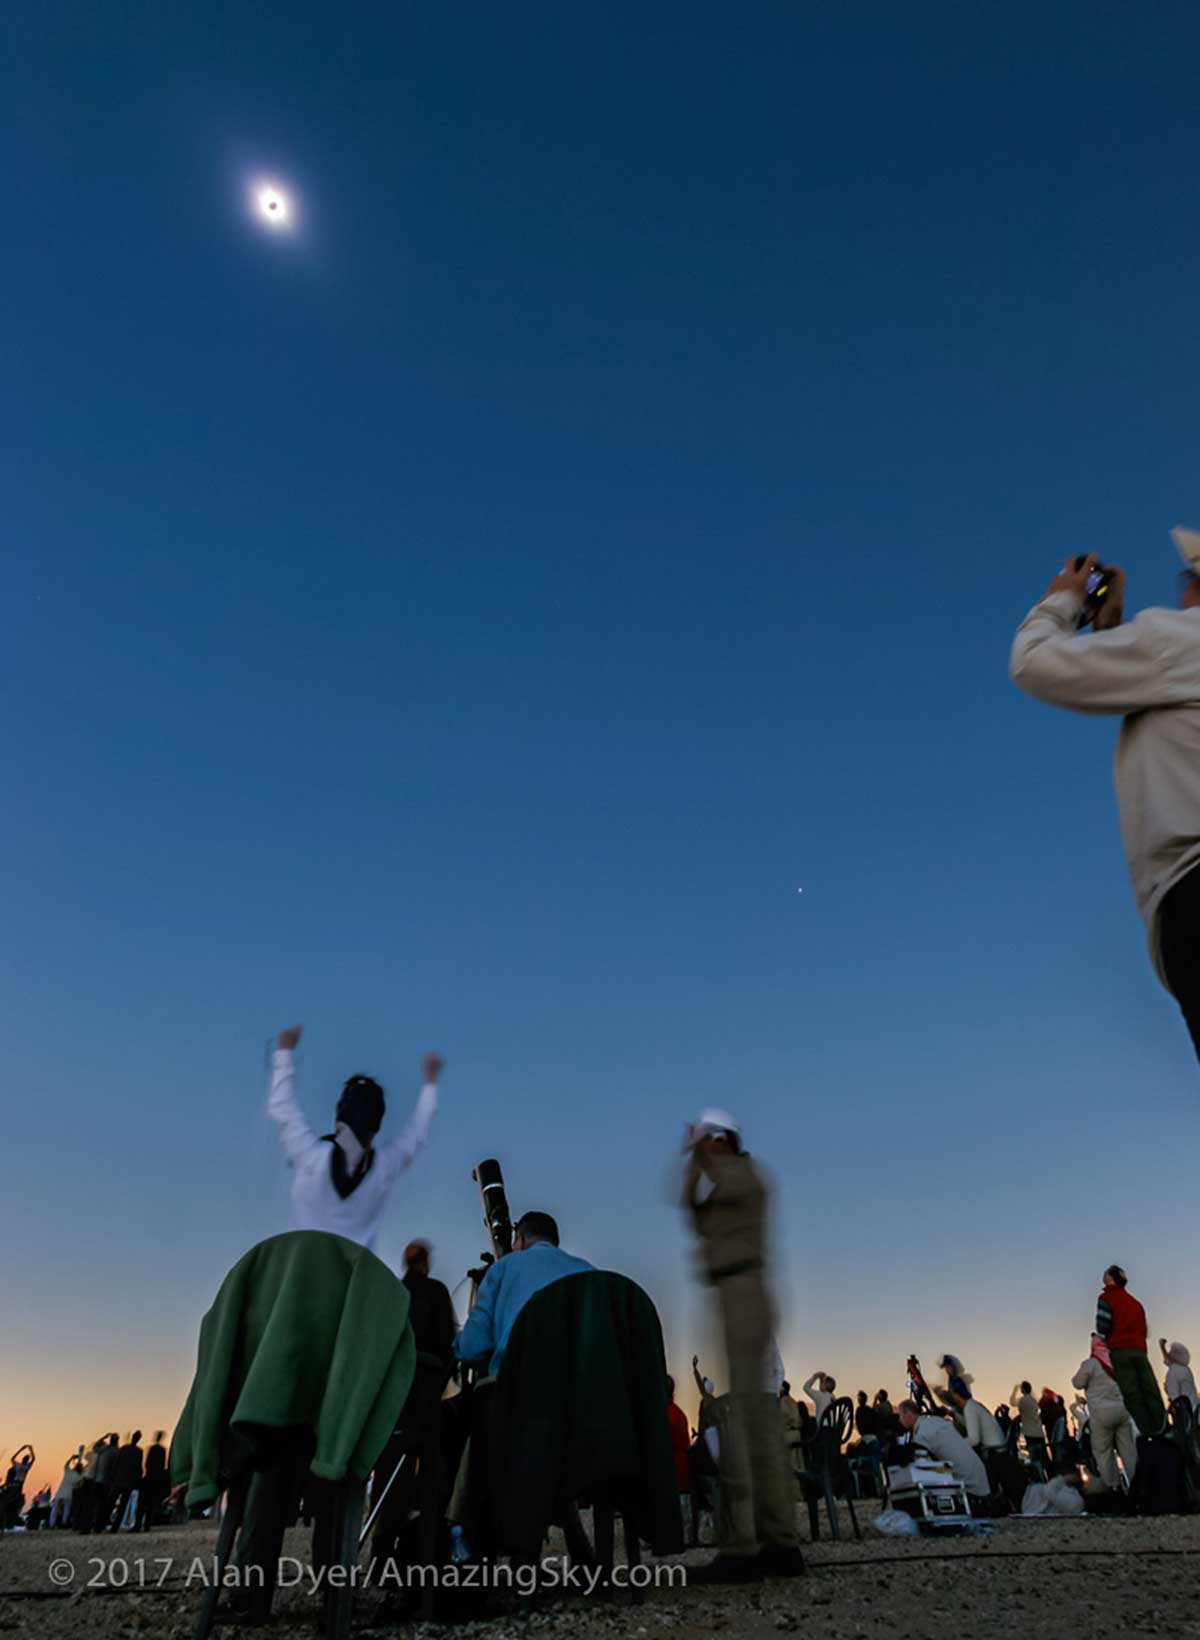 Wide angle photo (10 mm) of eclipse, Libya, 2006 by Alan Dyer ©